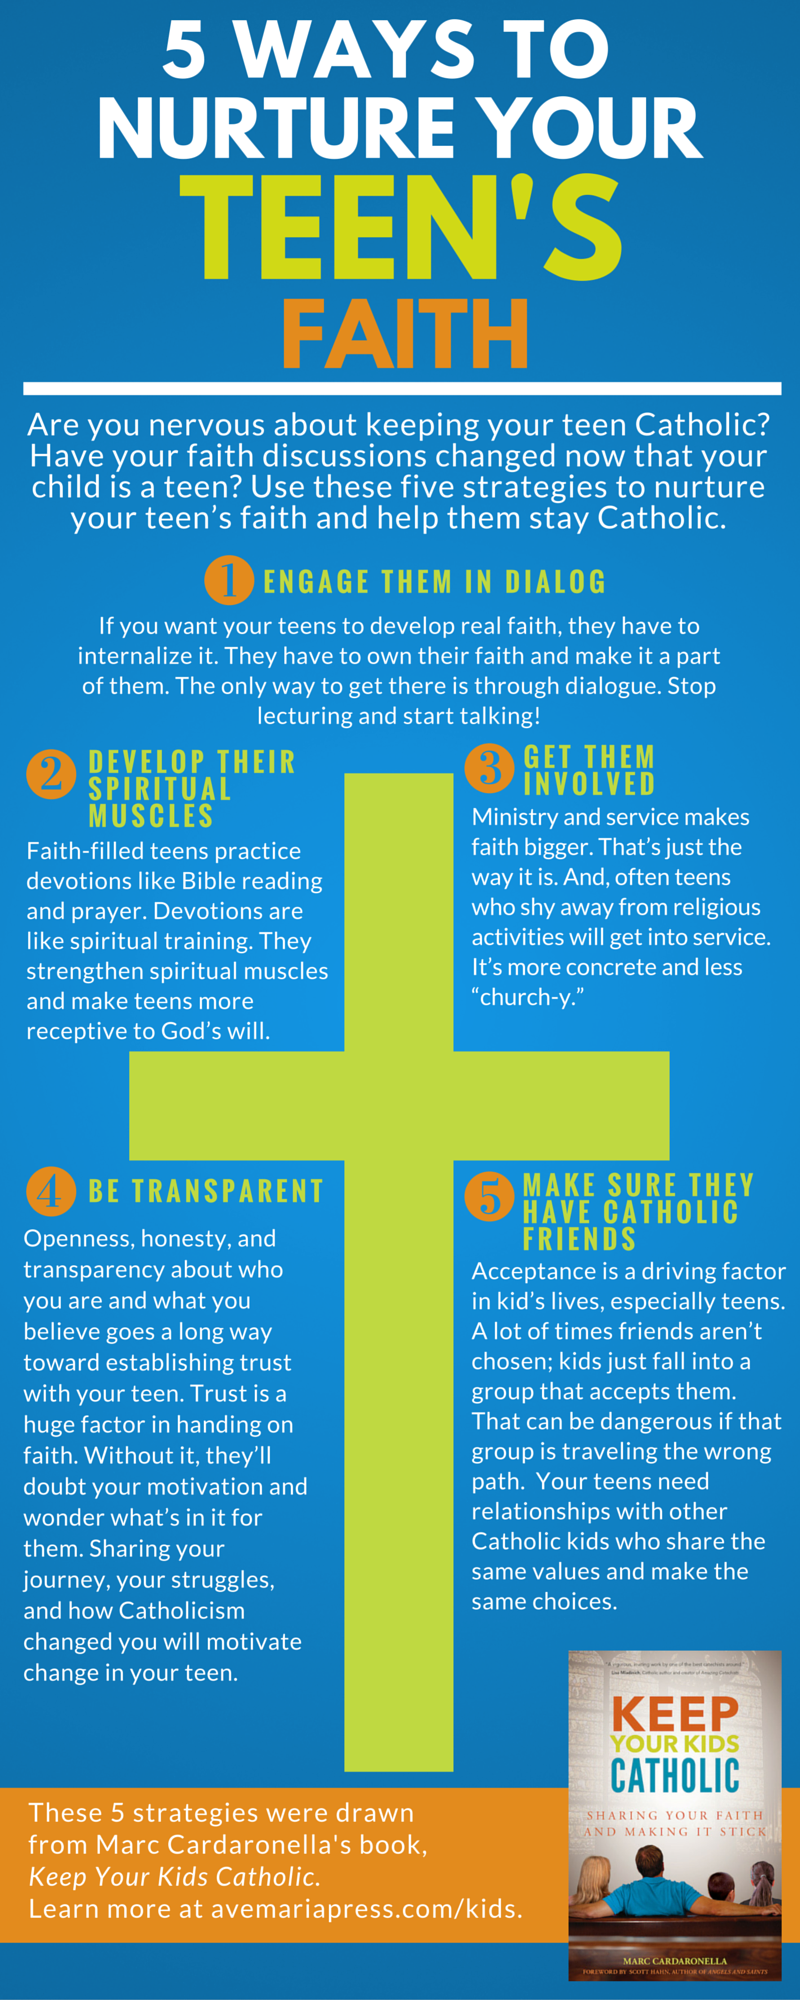 Nurture Your Teen's Faith